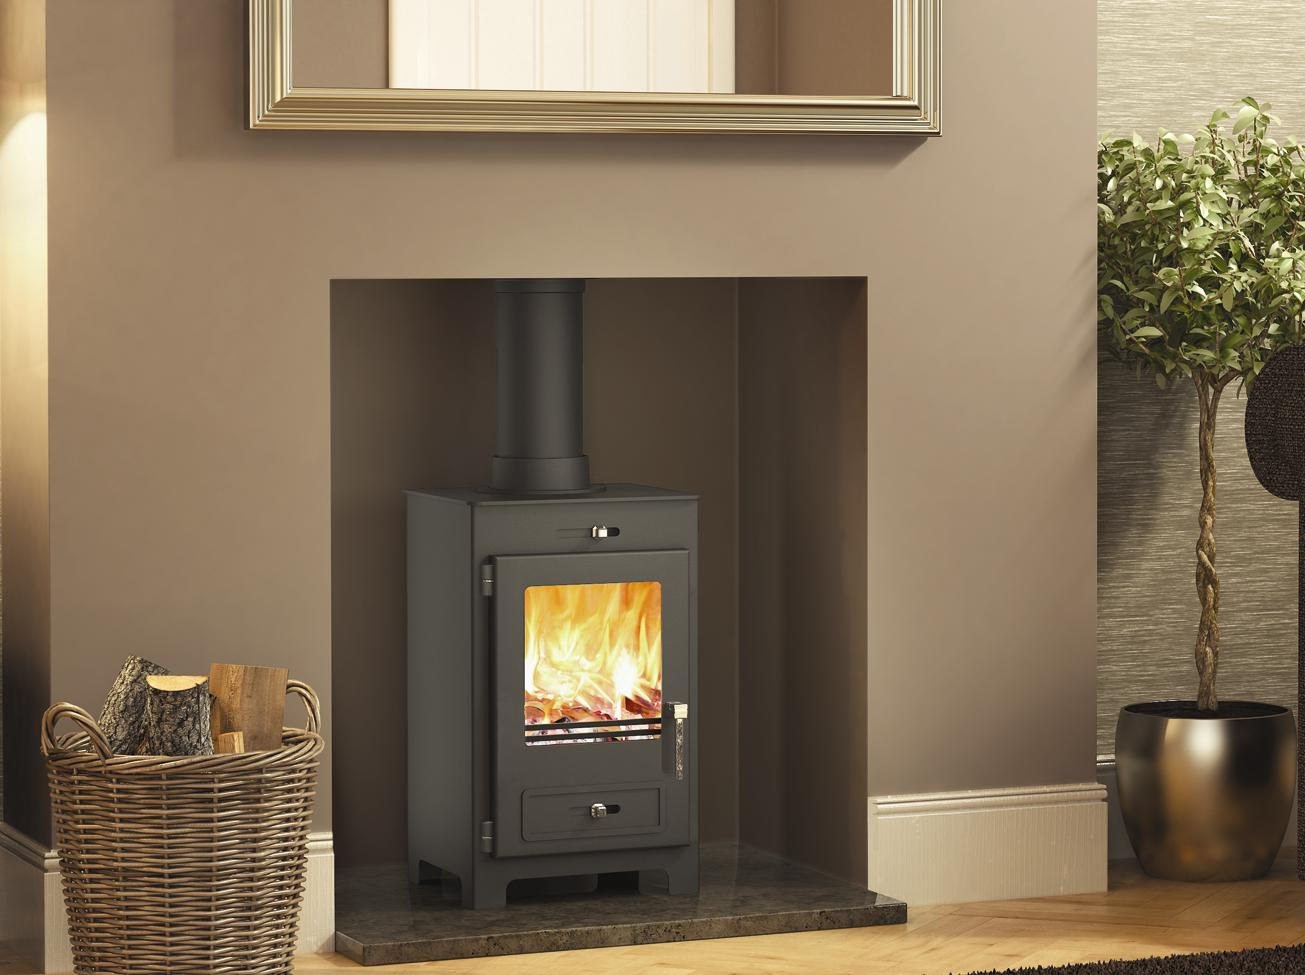 5KW Silverdale 5 SE Woodburning Stove - Modern Wood Burning Stoves Excellent Value Wood Burning Stoves